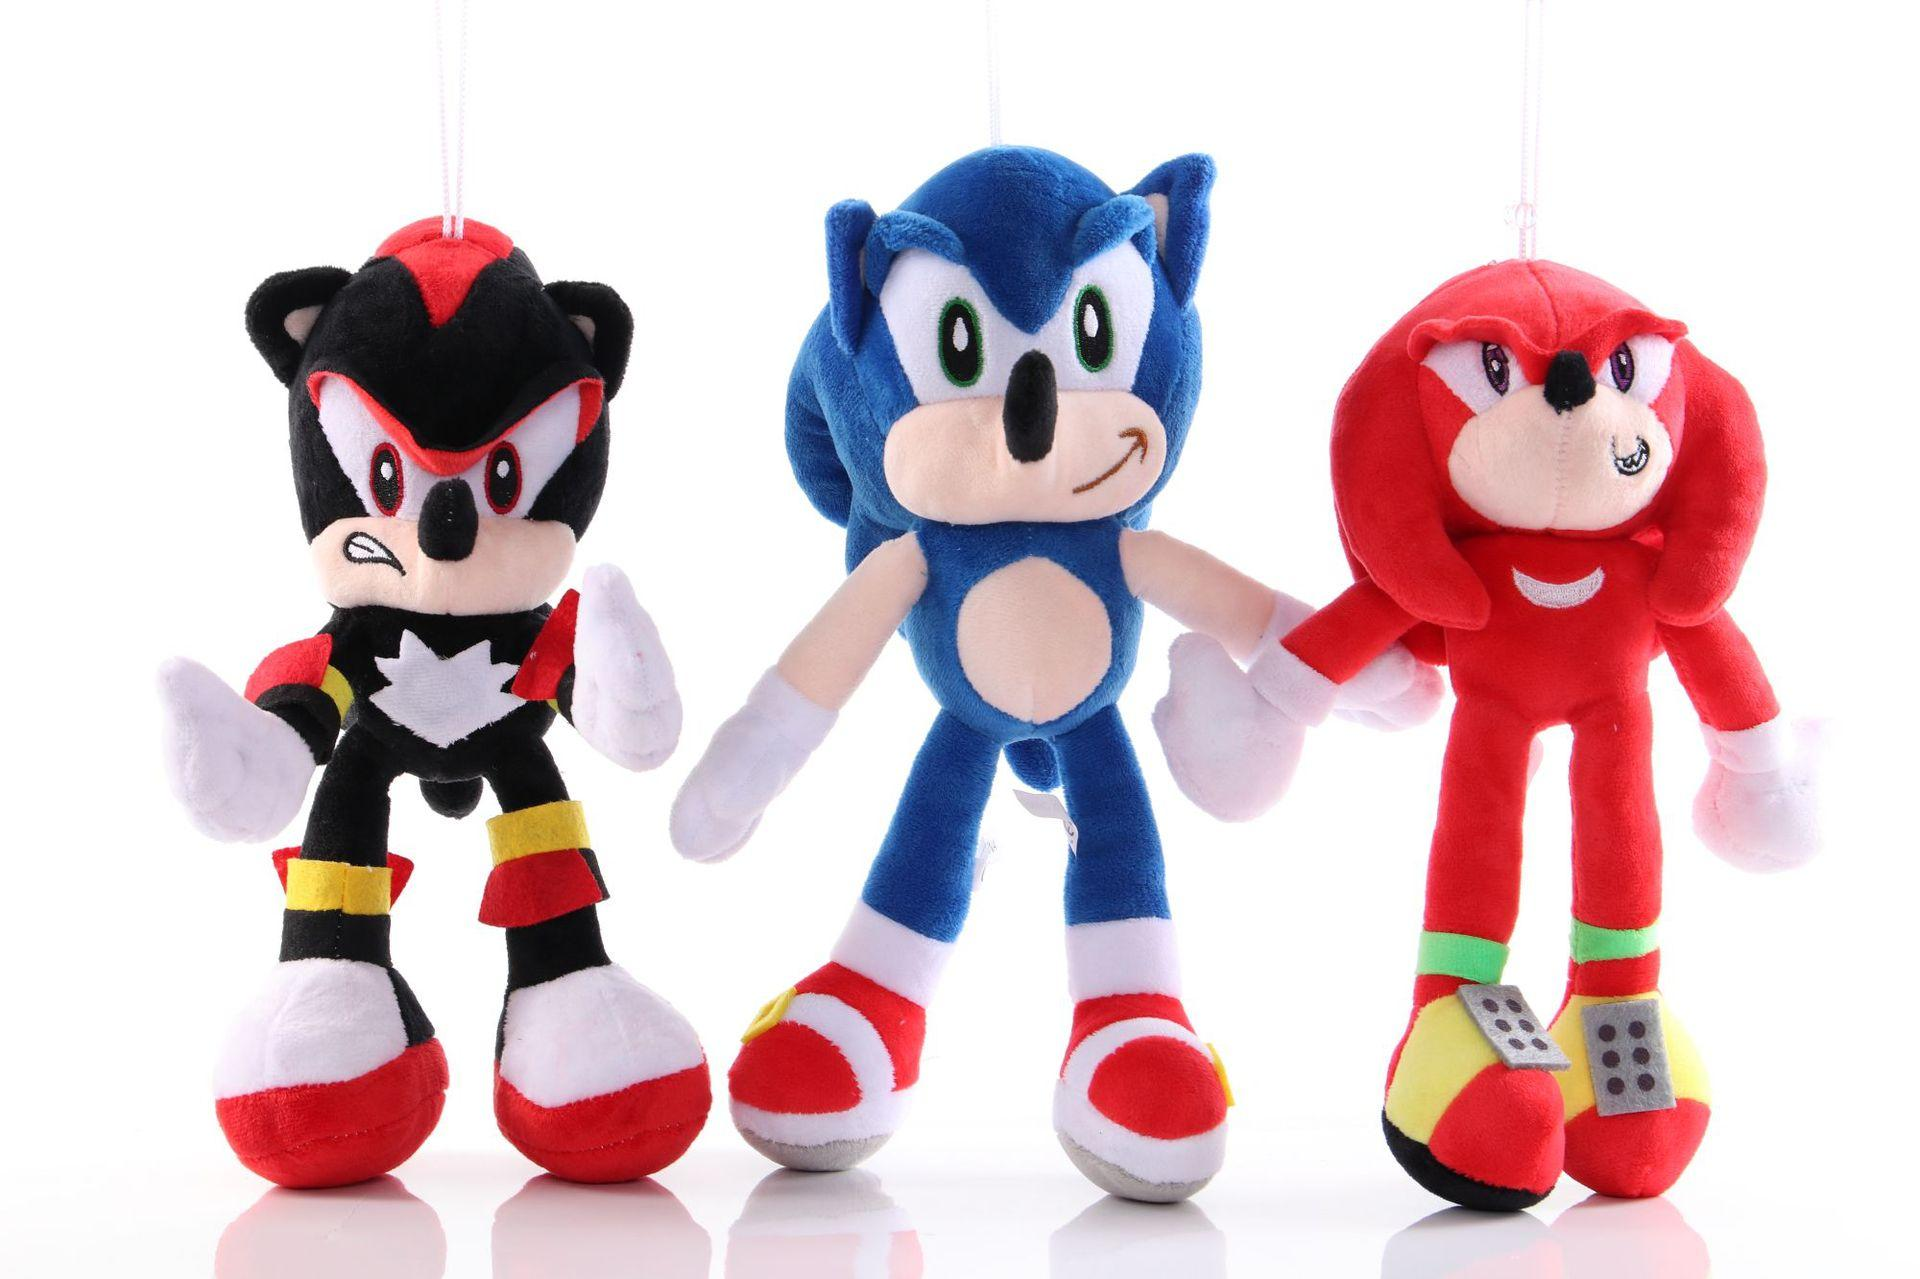 2020 25cm Sonic Plush Toys Sonic The Hedgehog Stuffed Animals